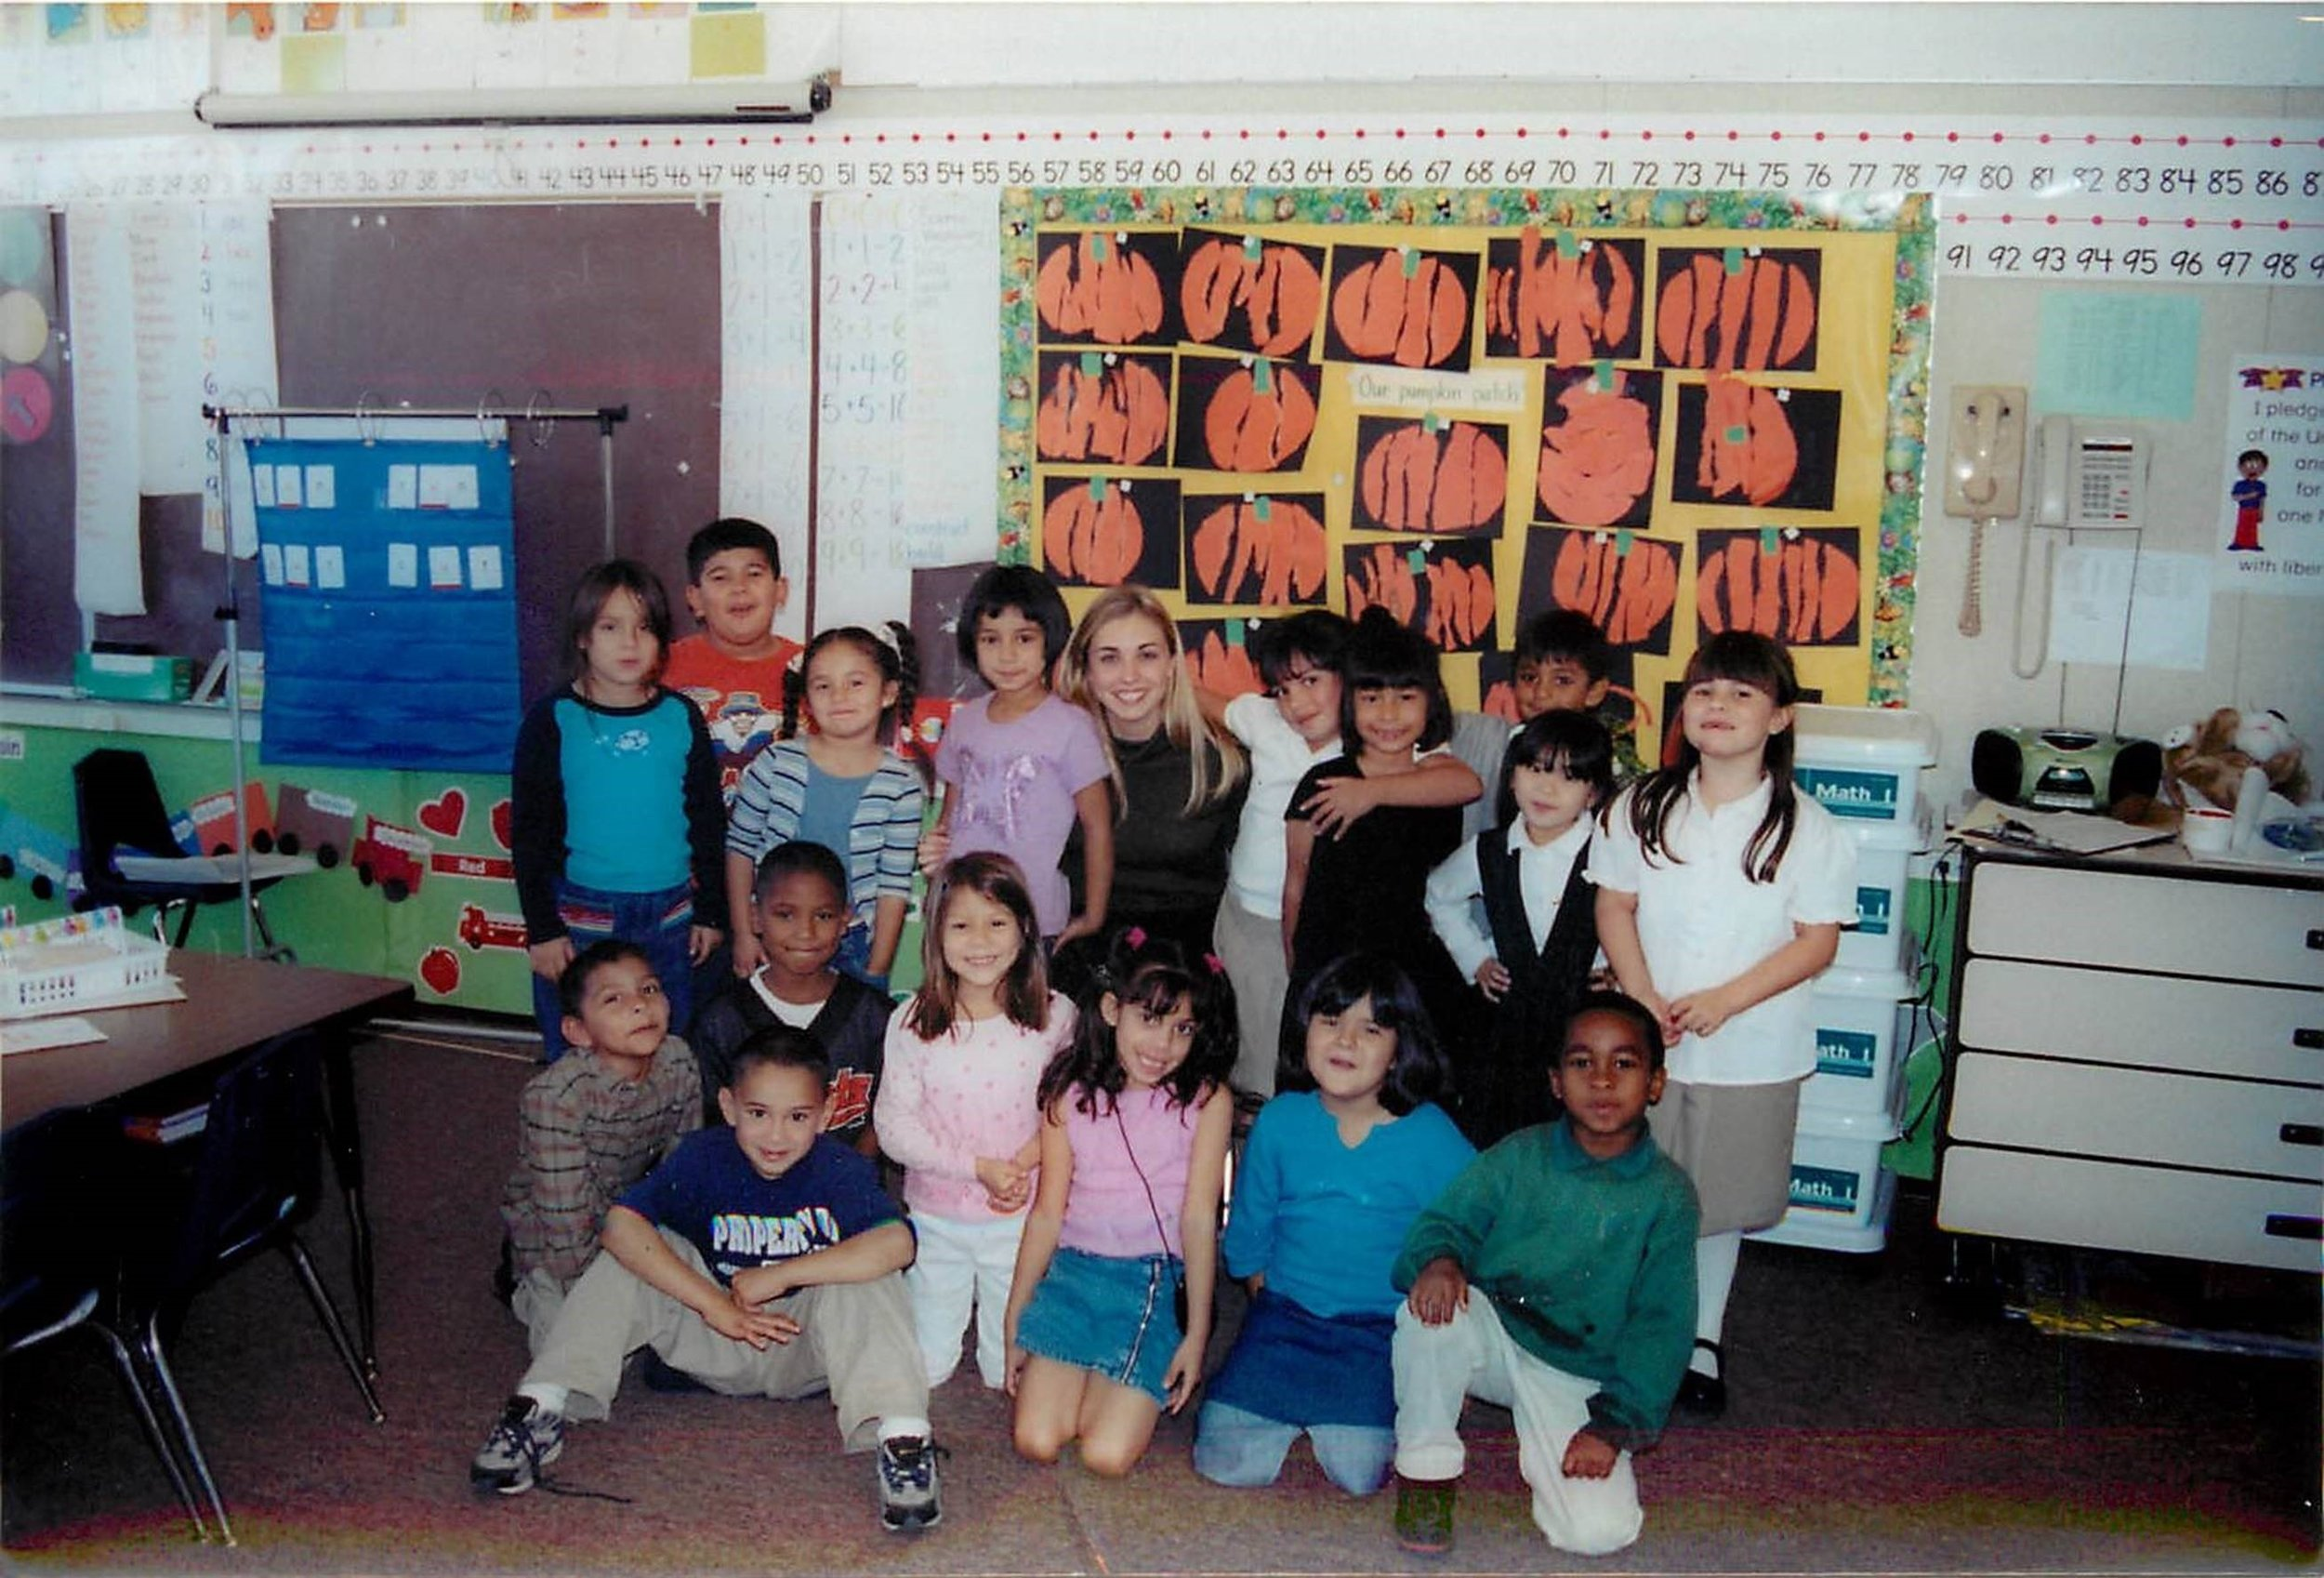 - I really found my love for education while I was in the classroom. But I also had a few pivotal moments that made me frustrated and feeling like I could help address larger systemic issues.